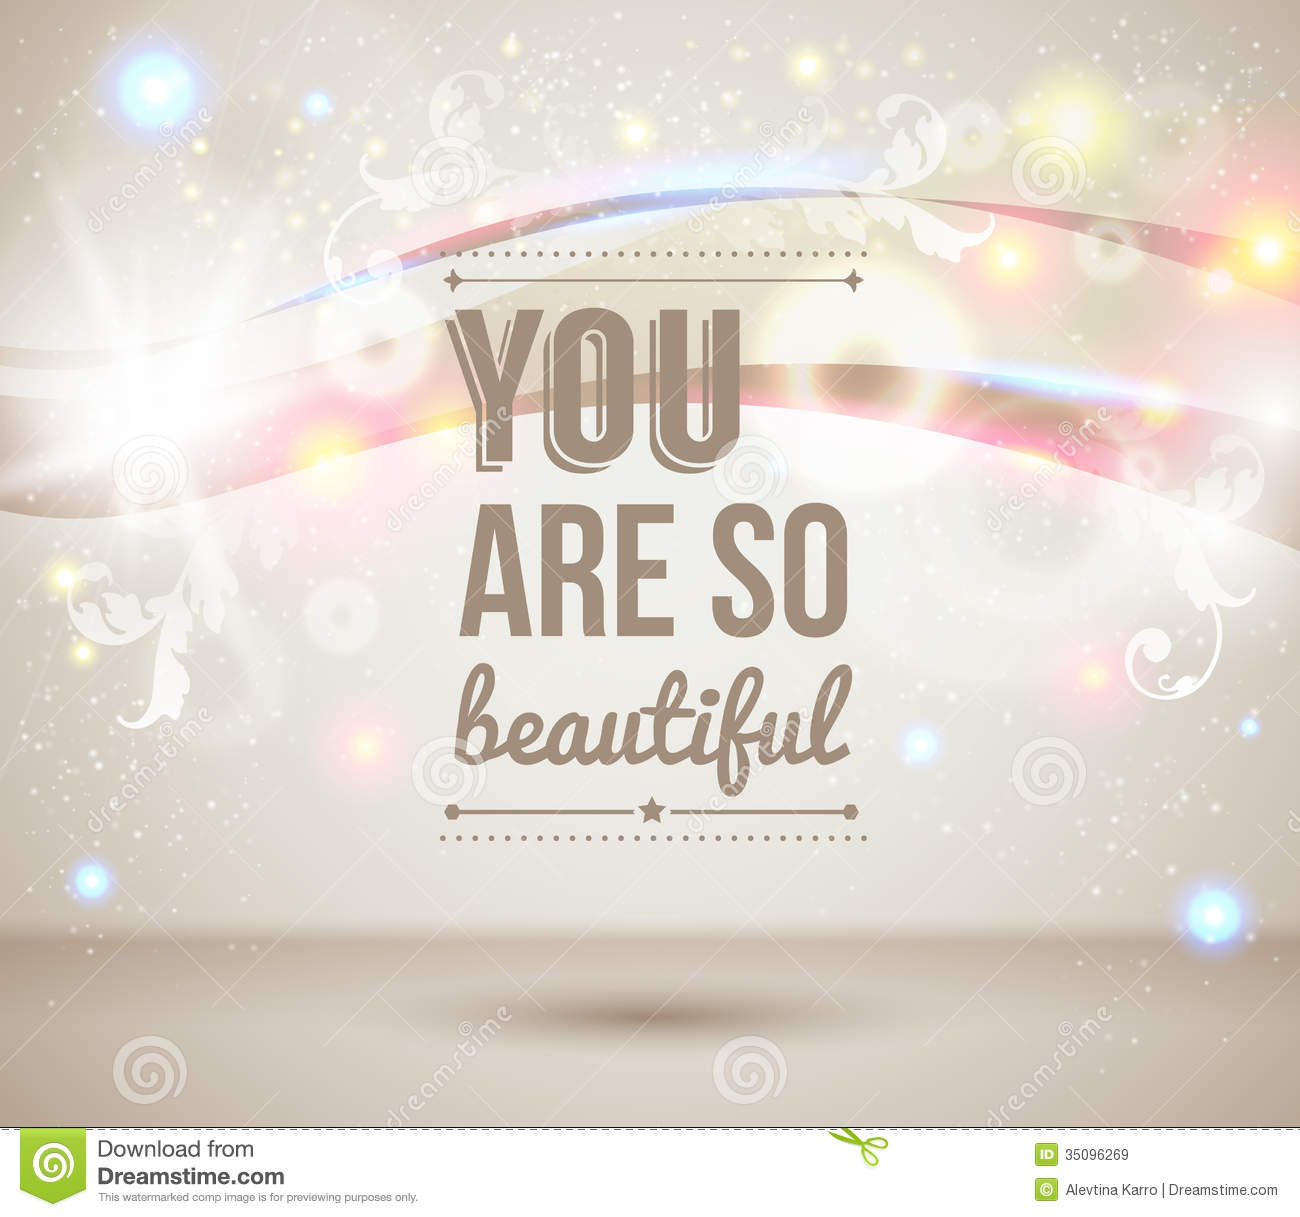 You Are So Beautiful Motivating Light Poster Royalty Free Stock Images Image 35096269